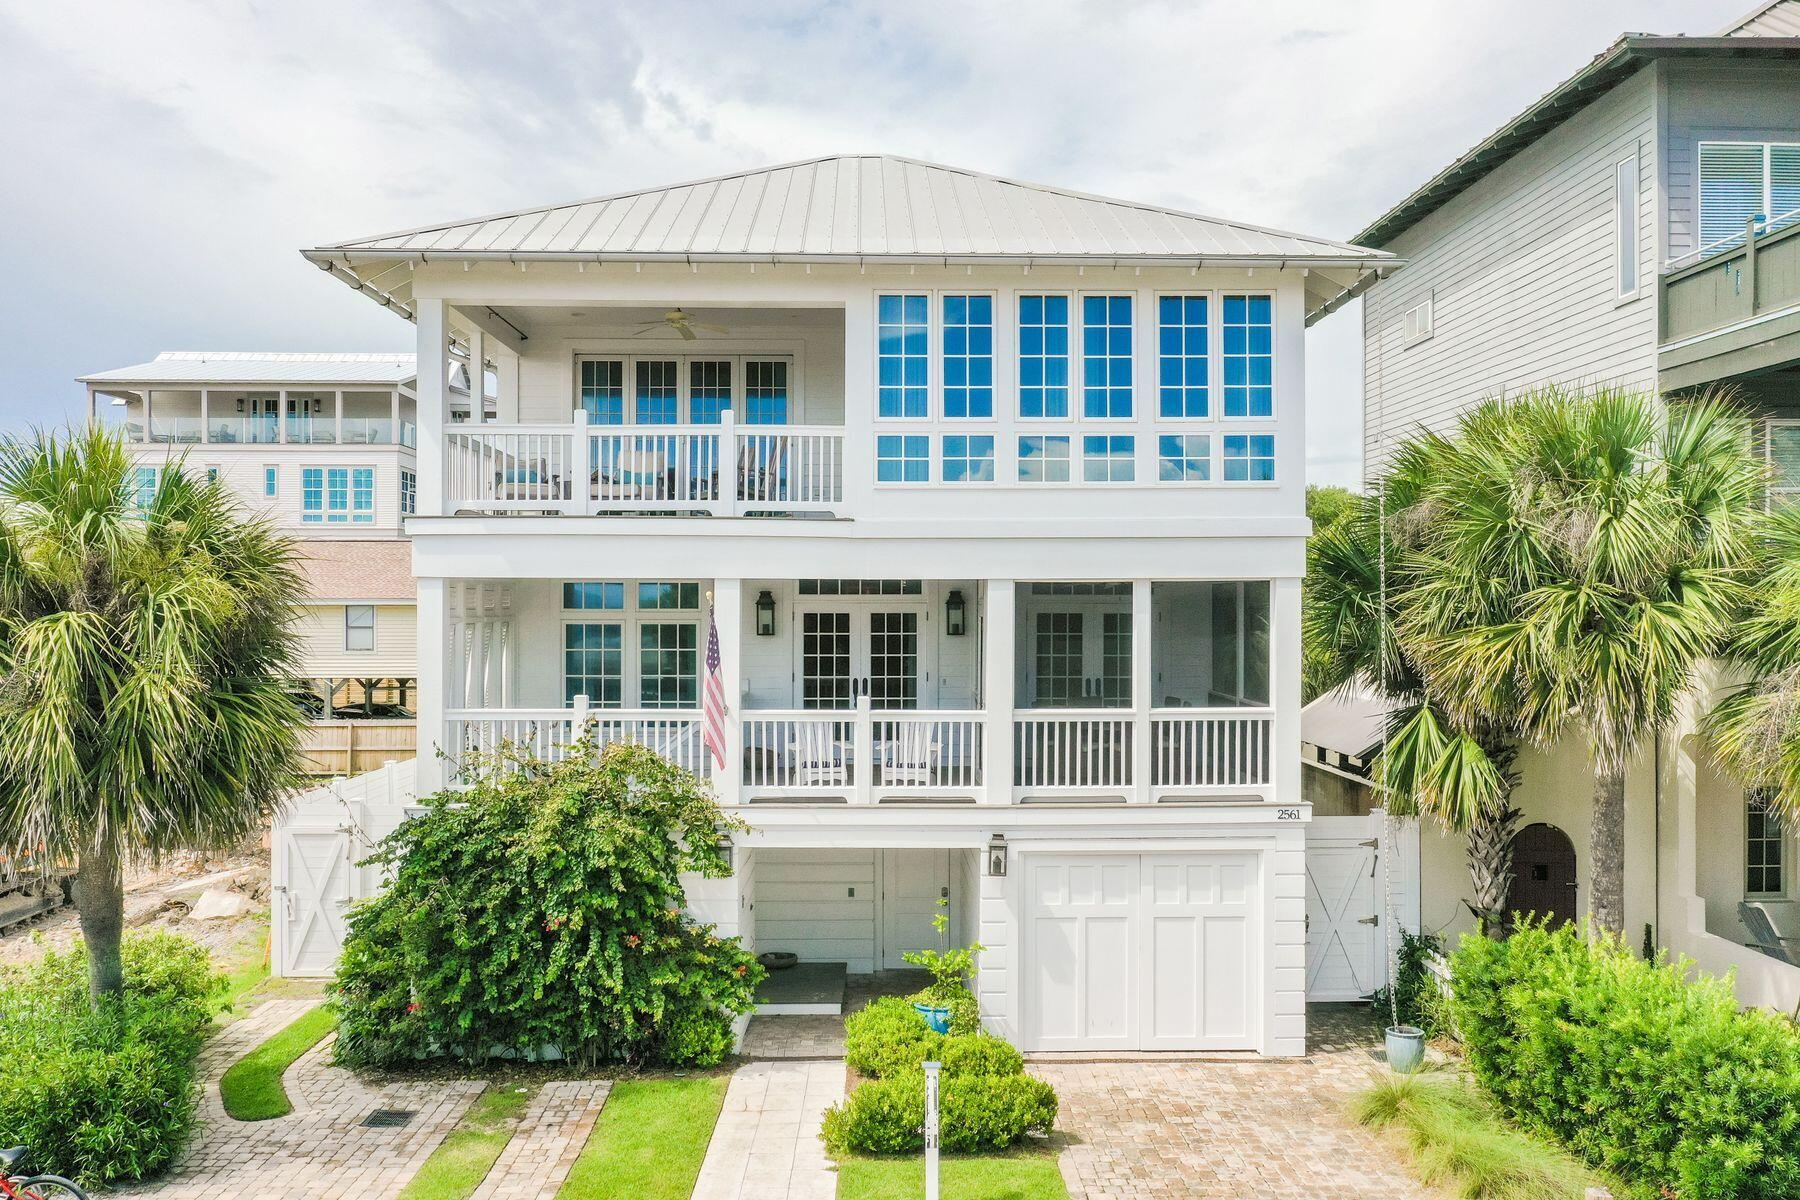 This magnificent beach home is one house from the beach with amazing views and an incredible outdoor living area with pool, spa, and lanai for the entertaining lifestyle. Steps from the white sandy beach, this prime located three-story home boasts breathtaking gulf views. This spectacular house was designed by renowned architect Sheldon Stone and interior designer Parker Kennedy in 2015. Four well-proportioned living spaces provide ample space for entertaining in style while guests can seek out their own quiet nook to relax or chat. White shiplap and soft nautical hues create a laid-back beachy ambience in a home designed for families and friends to come together and make memories. Floor-to-ceiling french windows bathe the main living area in natural light while gleaming hardwood floors floors add a sense of timeless durability. Entertaining is a cinch in the fully-equipped open-plan kitchen with all-white cabinets and granite counters. The center island breakfast bar is designed for hanging out with the chef. A sliding barn door hides ample orderly storage in the spacious walk-in pantry. Five upscale bathrooms and five bedrooms include a spacious bunk room. Wake up to shimmering gulf views stretching to the horizon from several porches and loggia. Step outdoors and enjoy Florida life to the full. Relax on lounge chairs beneath the gazebo and take cooling dips in the curving saltwater pool and hot tub. Life at the beach does not come more convenient, with a beach walkover directly across the street. Look forward to solitary early morning walks on the expansive wave-lapped sand and sharing stunning sunsets with those you love. Boutiques, al fresco dining and entertainment are plentiful in nearby Seaside.